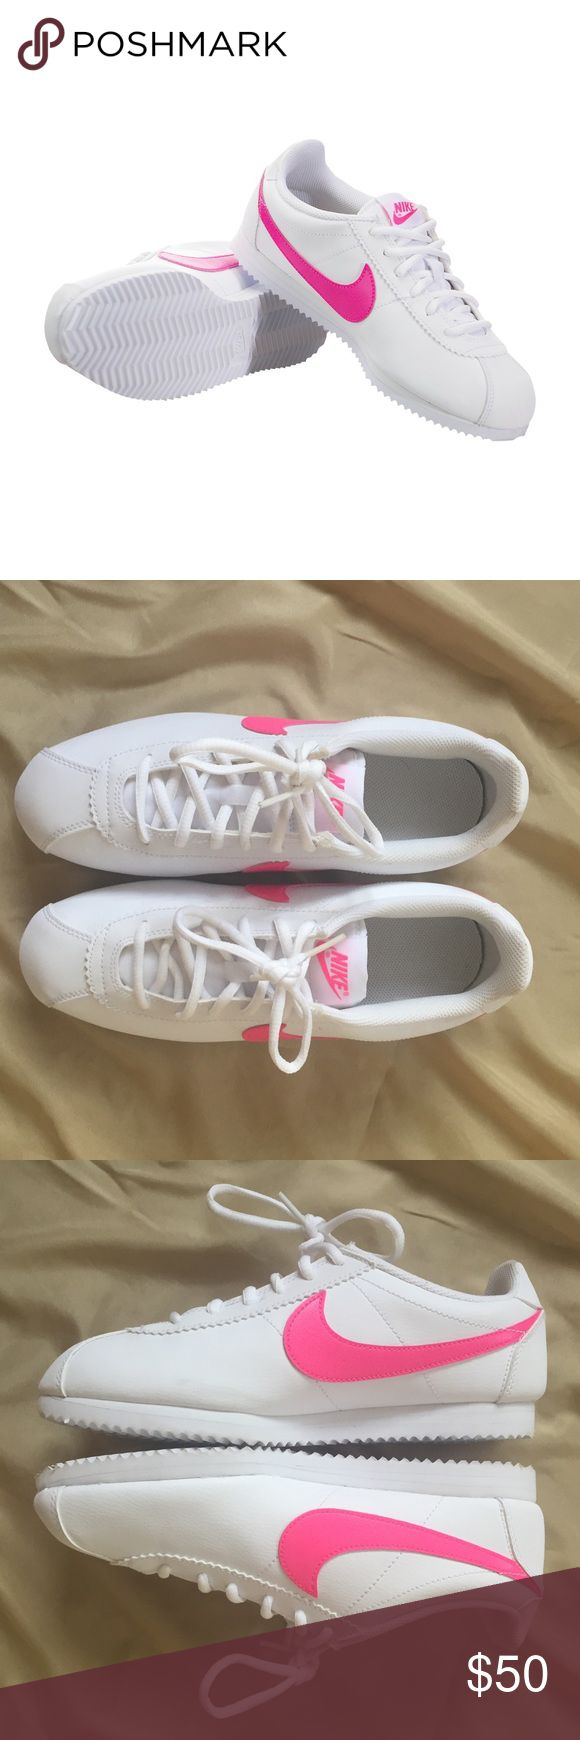 Nike Cortez Sneaker NWOB white Nike Cortez with pink swoosh. Super cute classic style! Youth 7Y which is equivalent to women's 8.5 as noted in Nike size chart in photos. **Toe box is very narrow, so if you have a wider foot I'd go up a size** Nike Shoes Sneakers